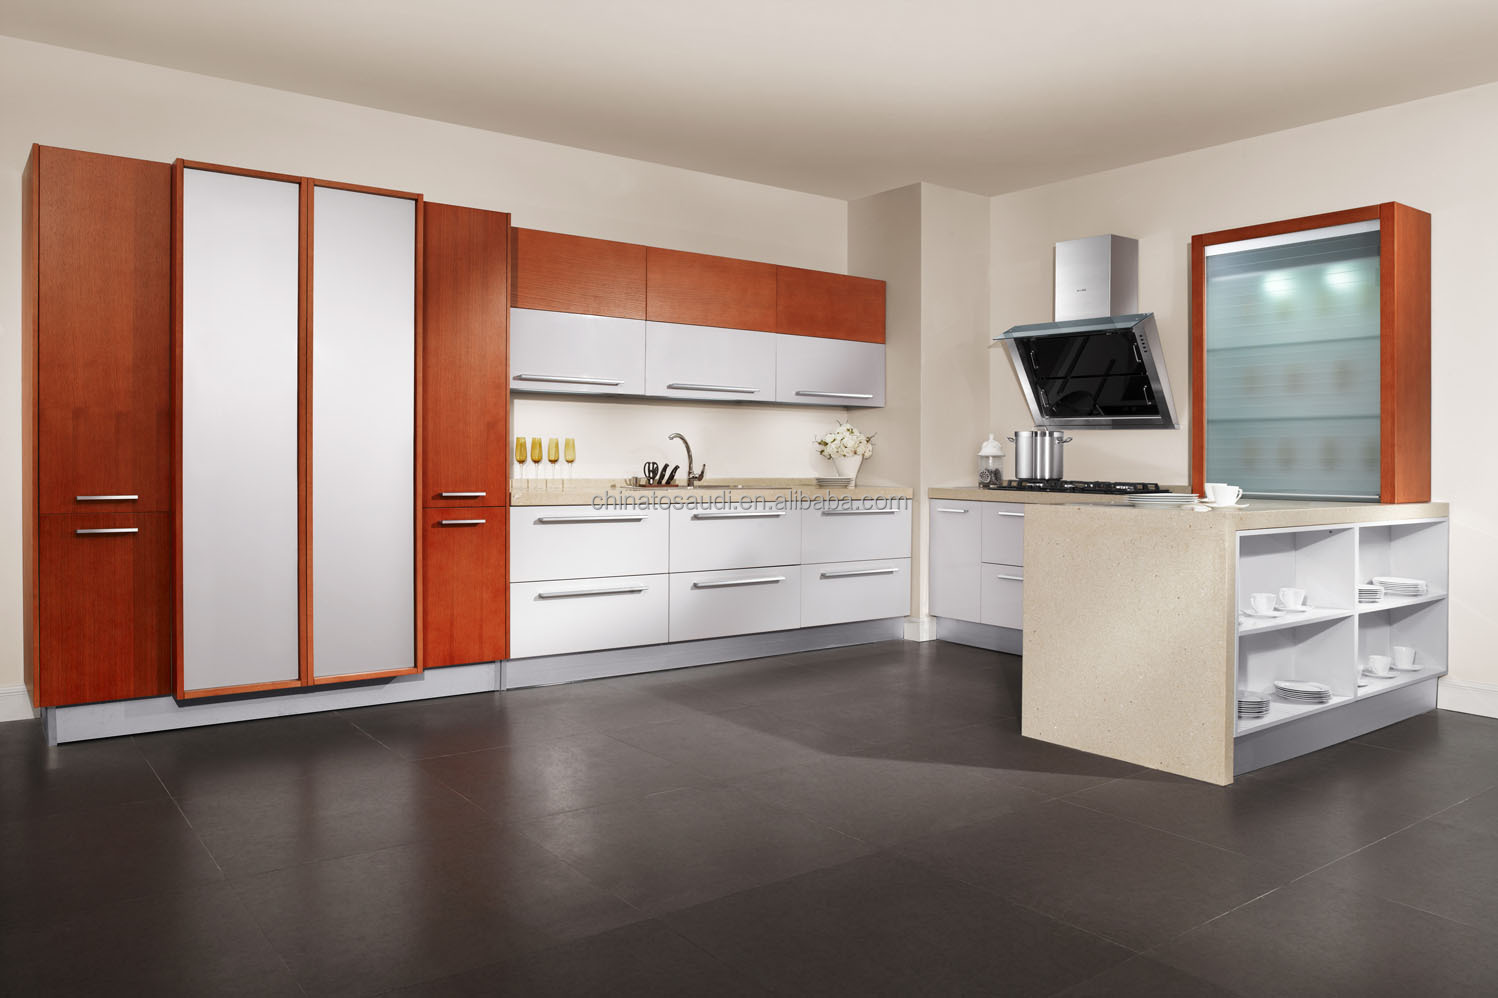 Made In China Kitchen Cabinets Modular Kitchen Cabinet Modern Kitchen Design Kitchen Cabinet